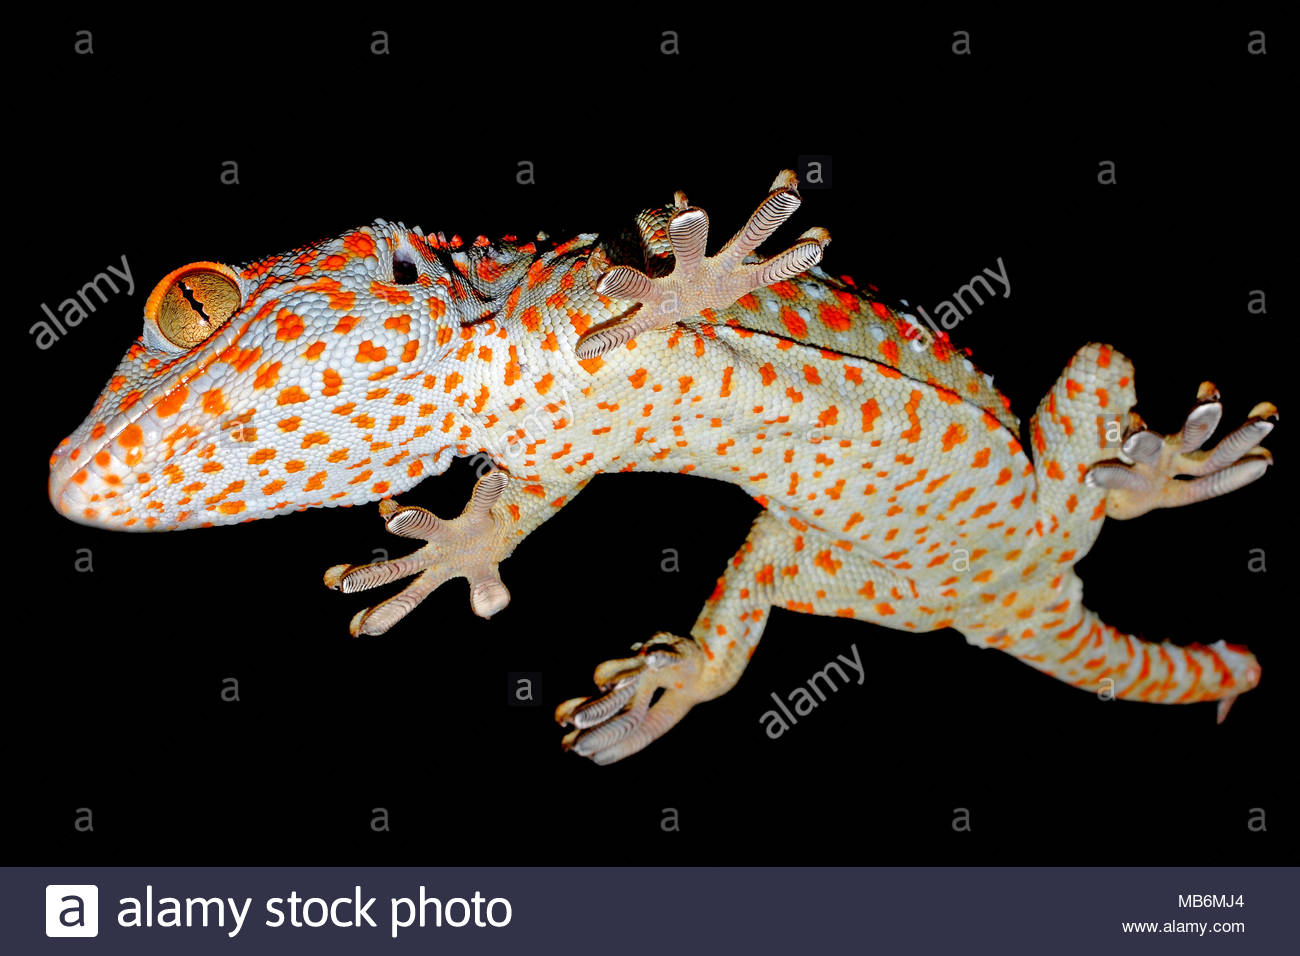 Tokay Gecko (Gekko gecko), perfect adhesion, walking head first on a glas panel, Sabang beach, Mindoro, Philippines, Asia - Stock Image